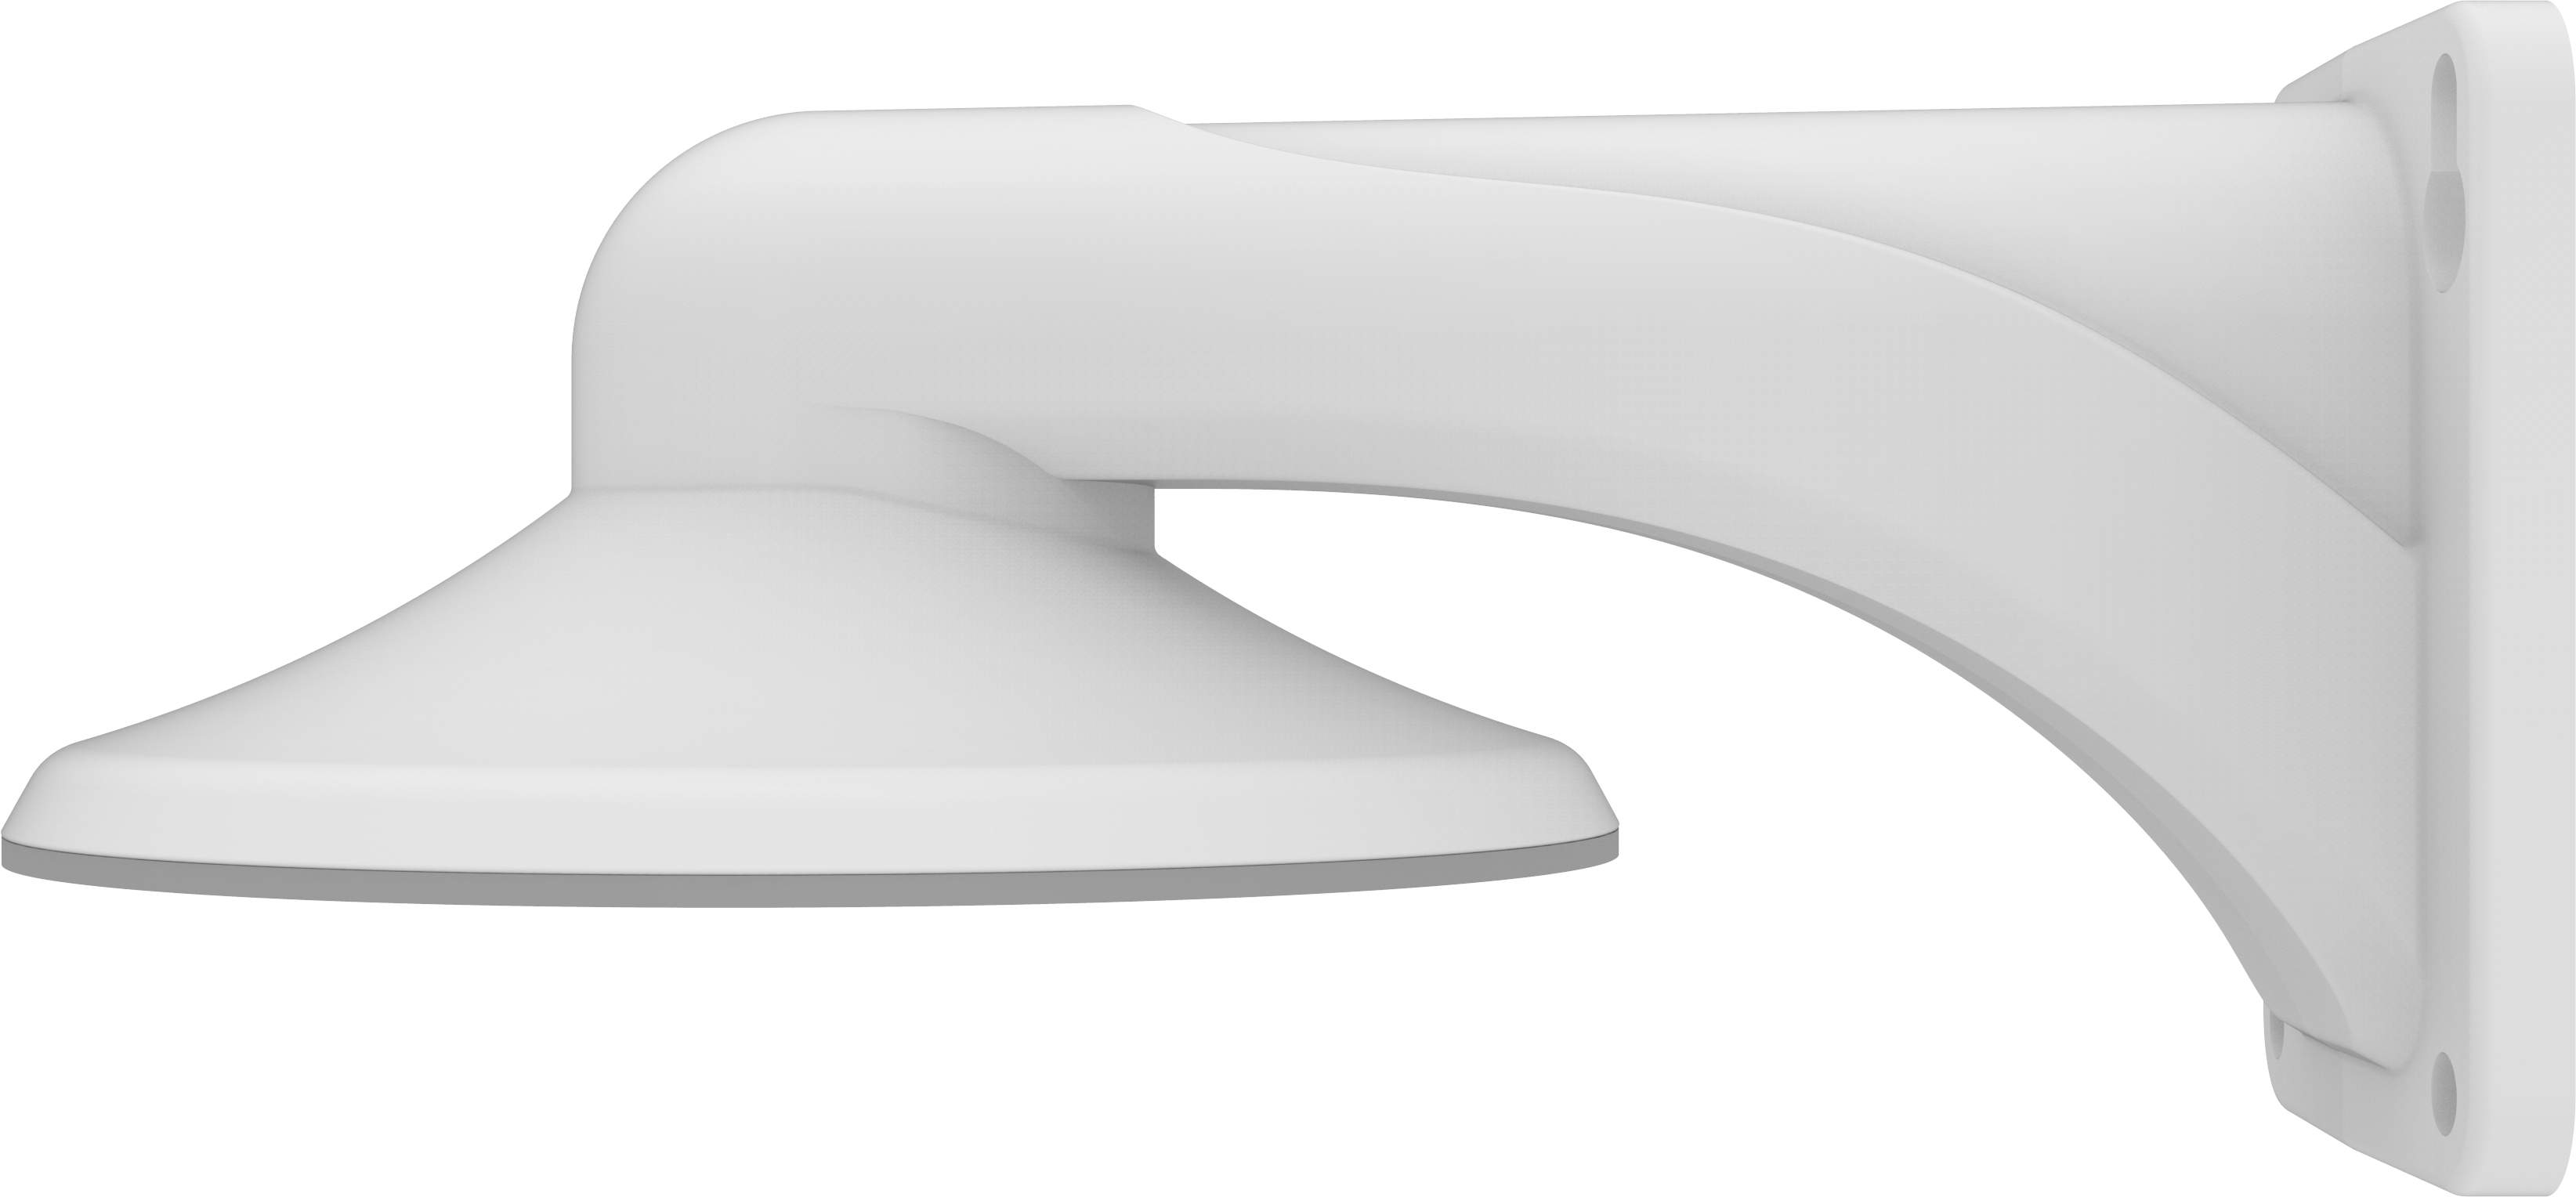 Knight Eye Wall Bracket